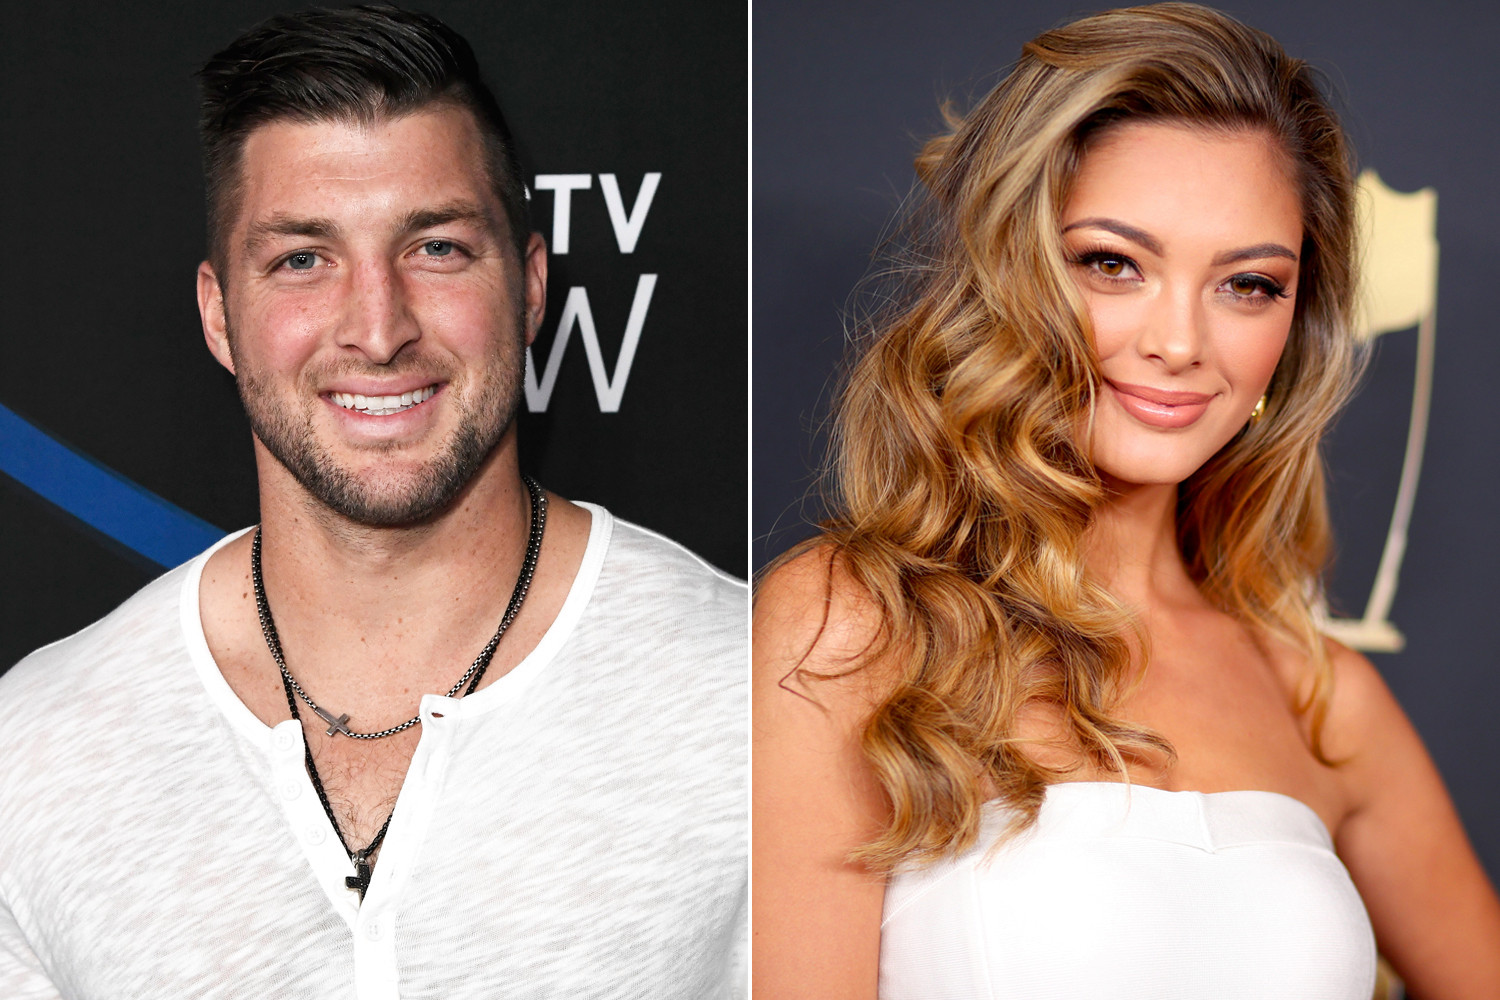 What to know about Tim Tebow's finacee, Demi-Leigh Nel-Peters